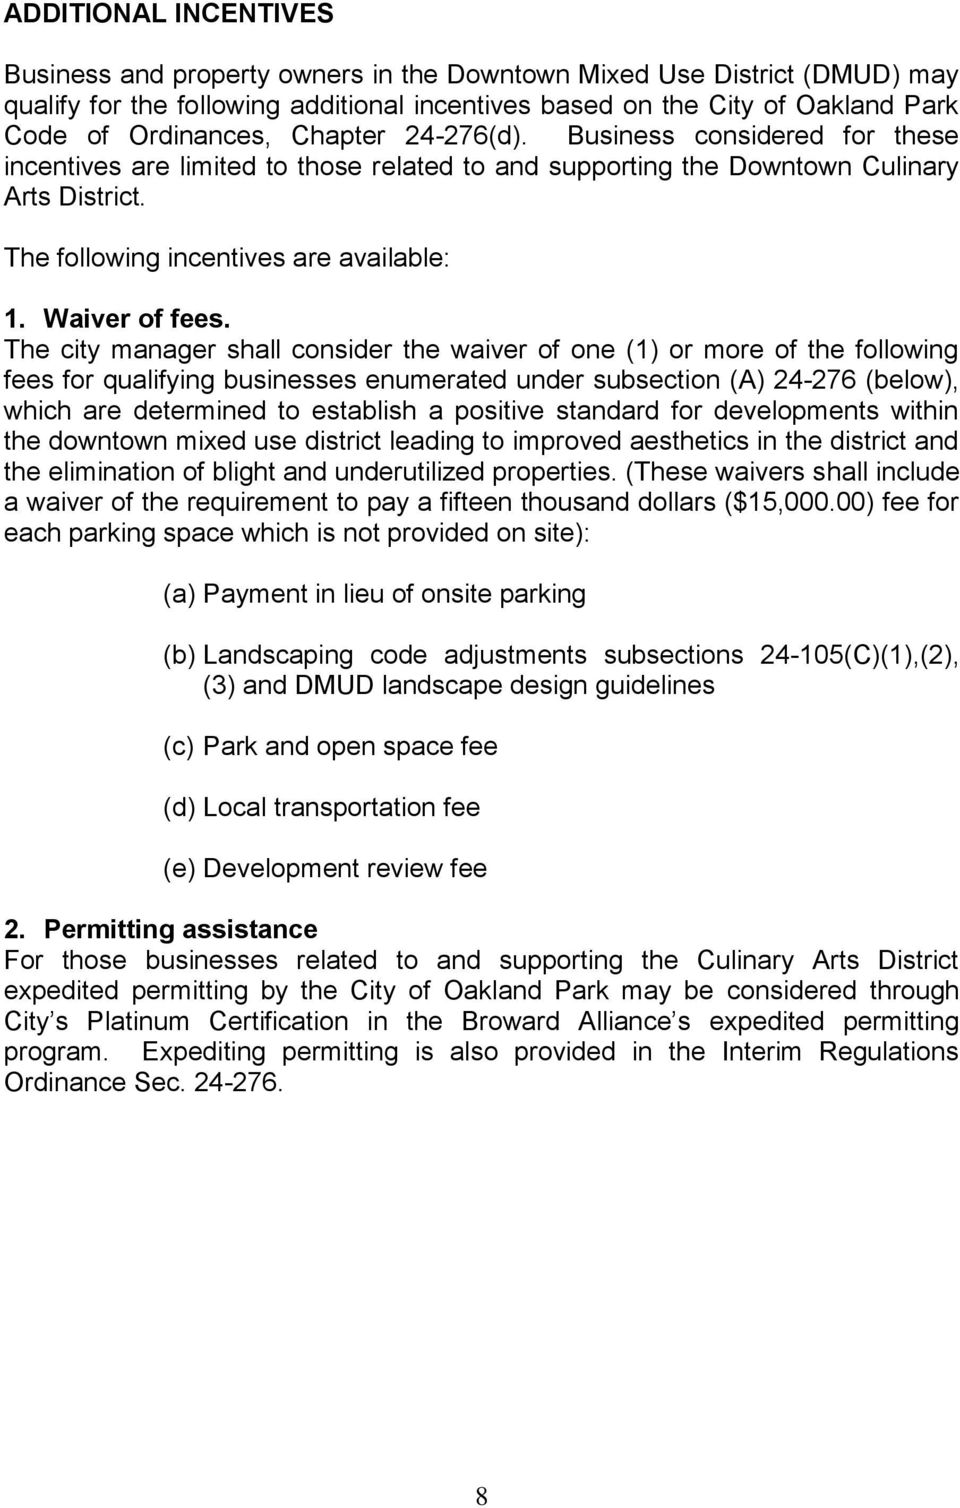 Waiver of fees.